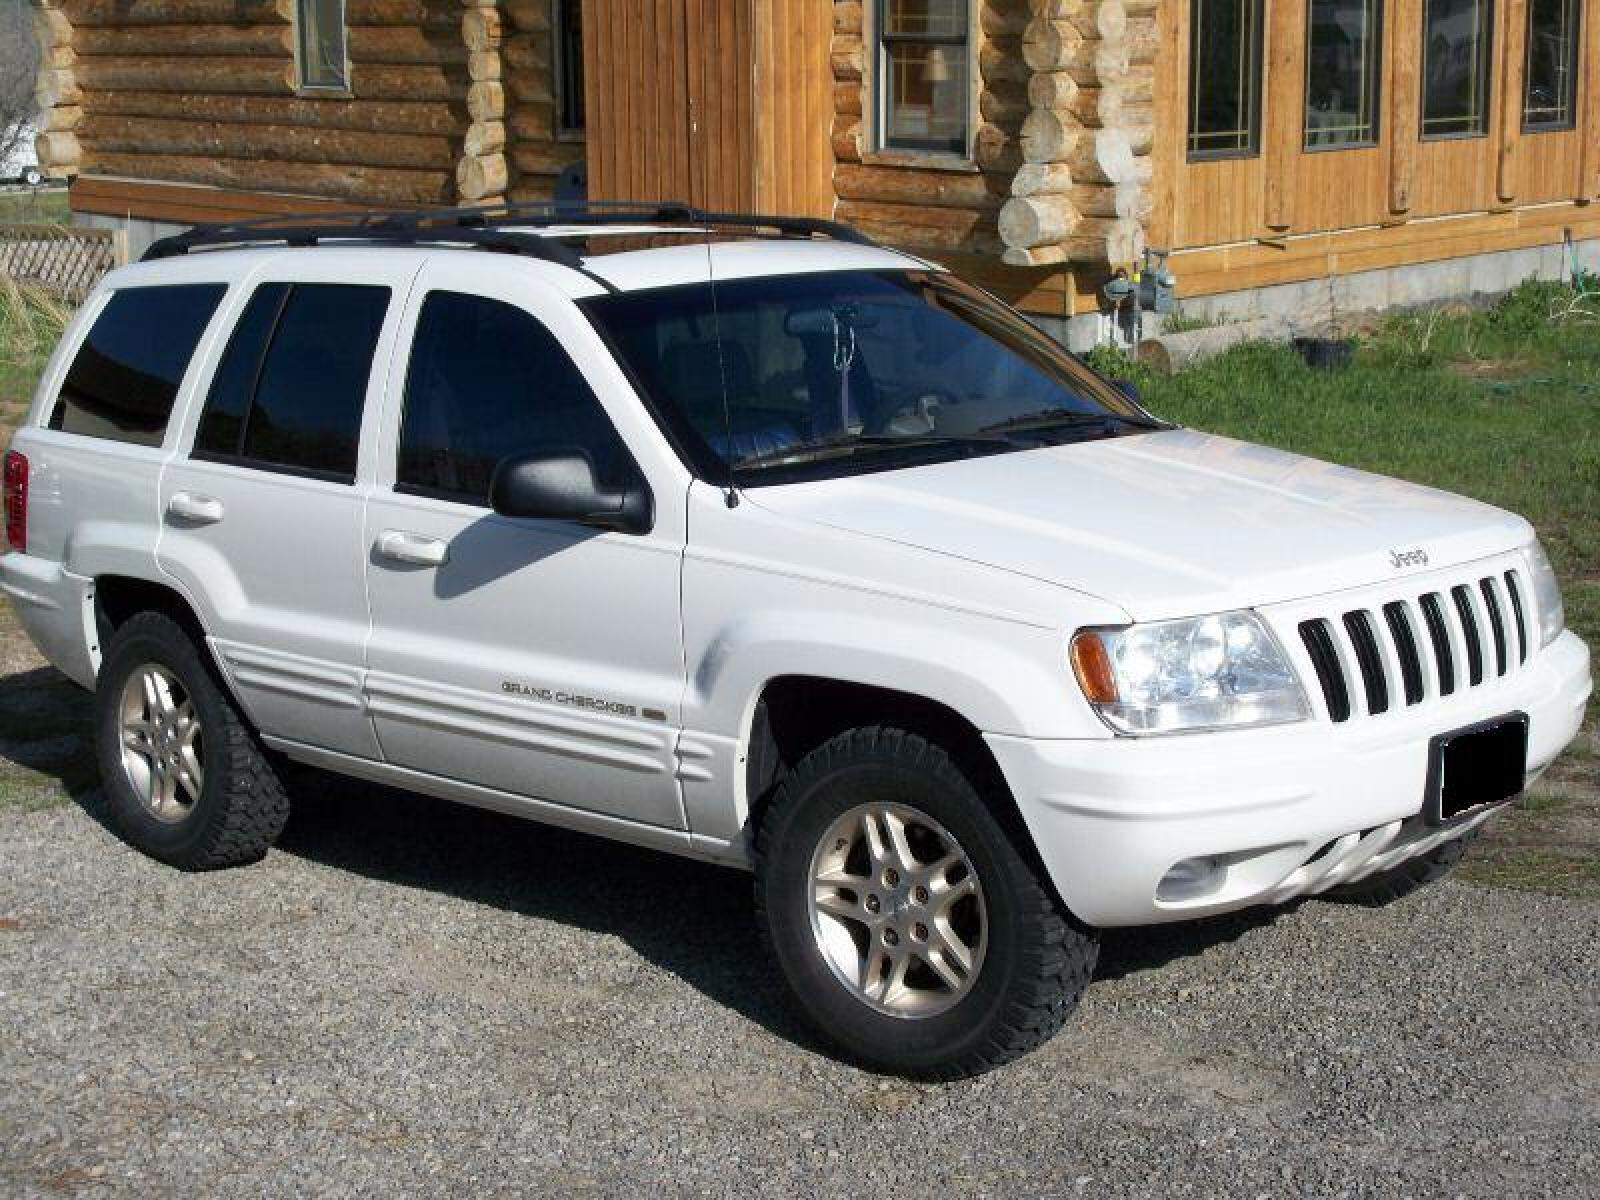 1999 Jeep Grand Cherokee Information And Photos Zombiedrive 6 800 1024 1280 1600 Origin